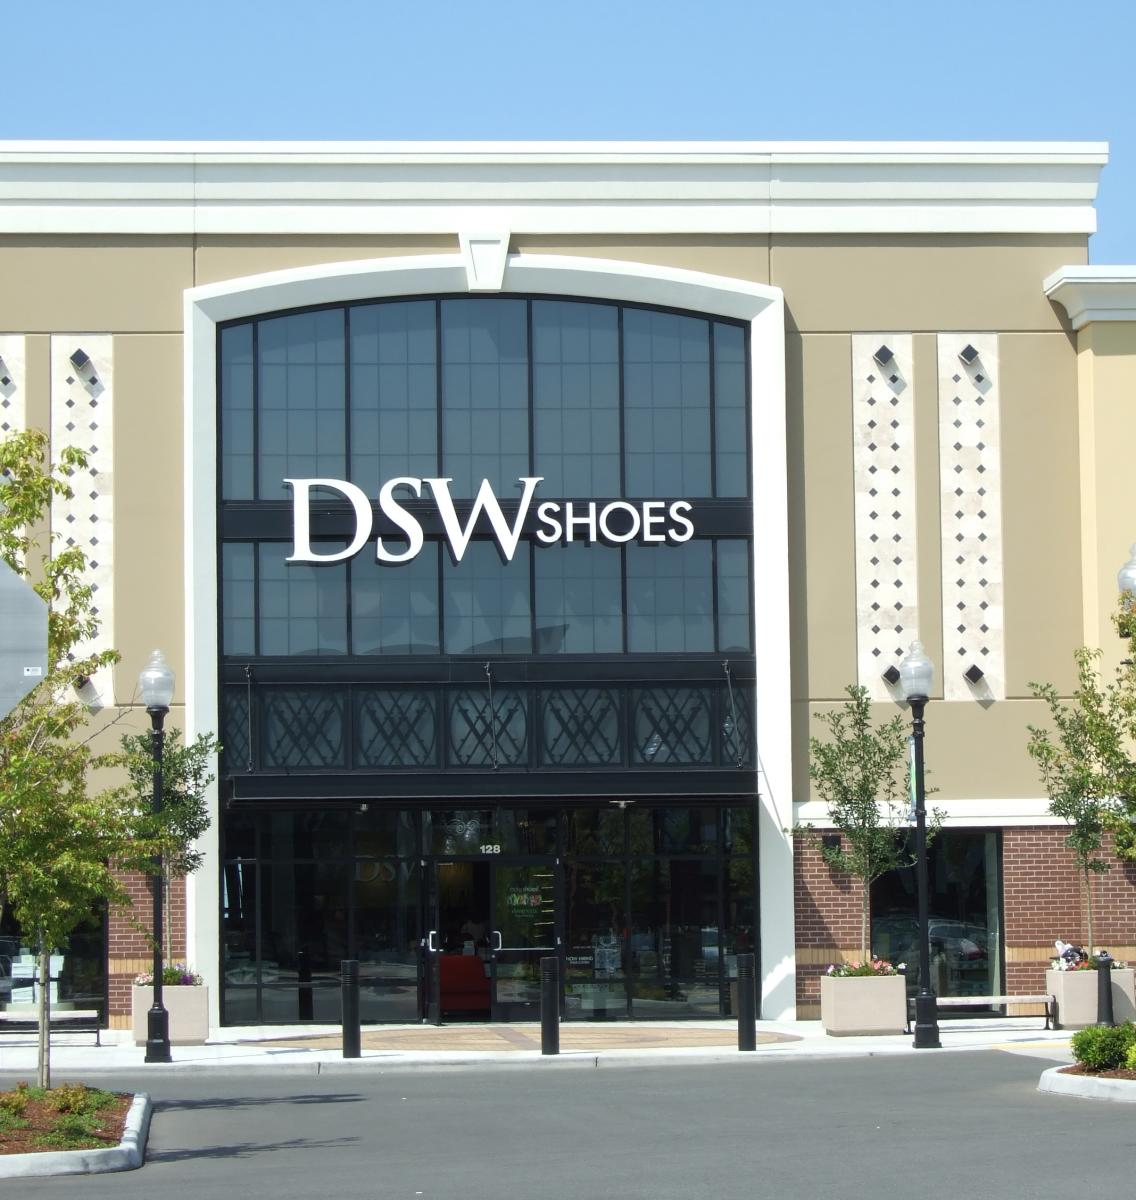 Exterior of DSW at Parkway Supercenter shopping